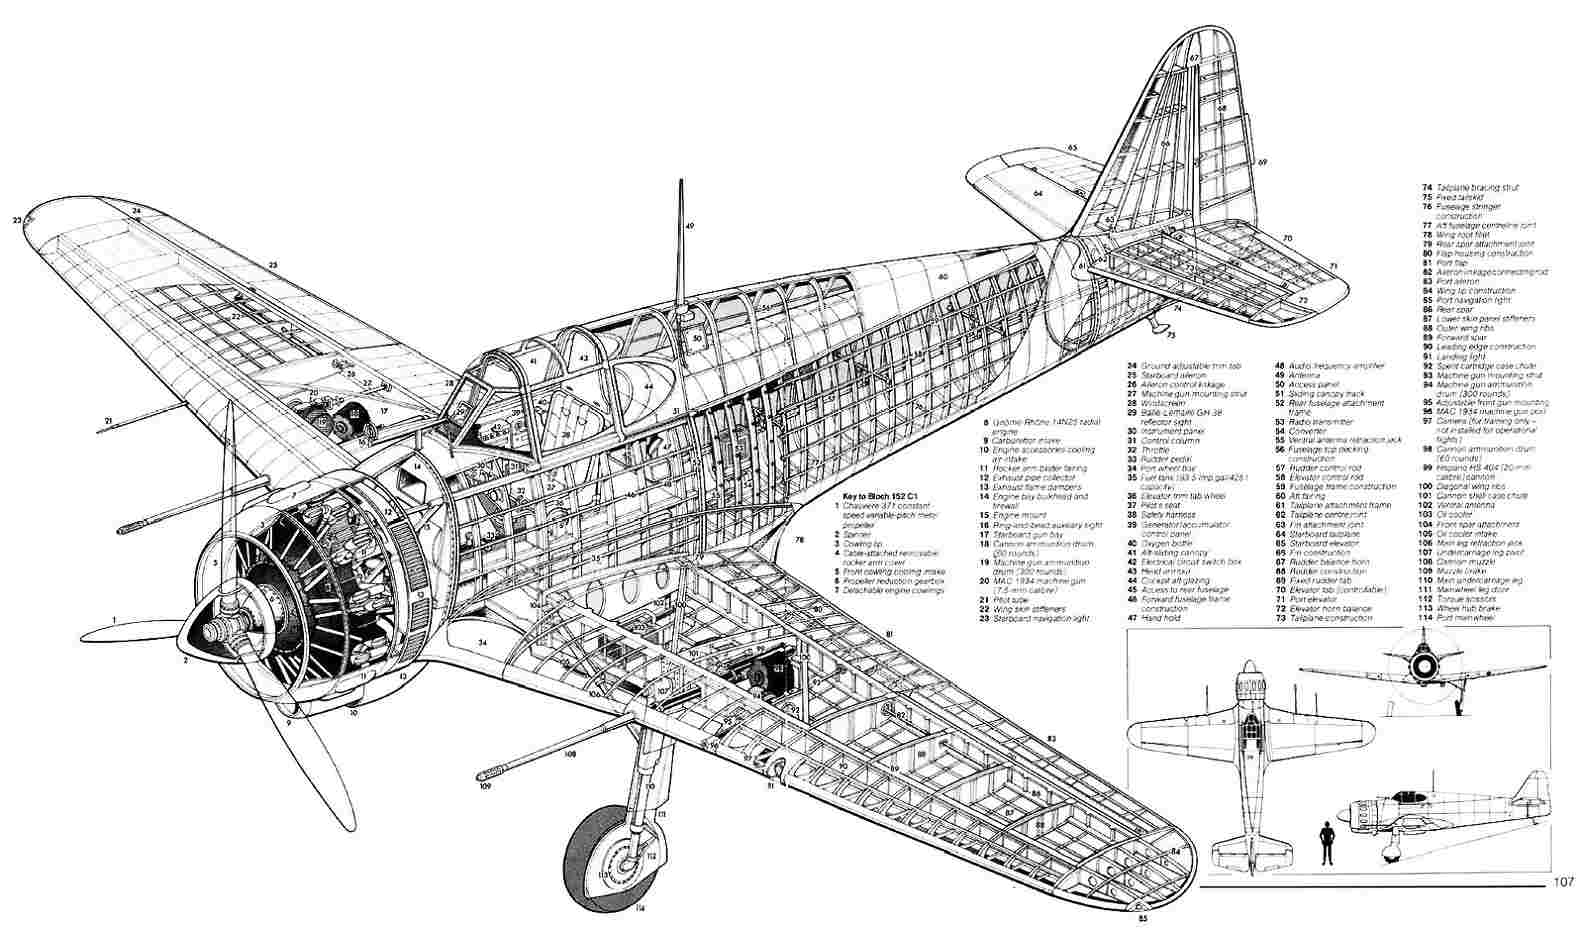 Bloch MB.152 blueprint